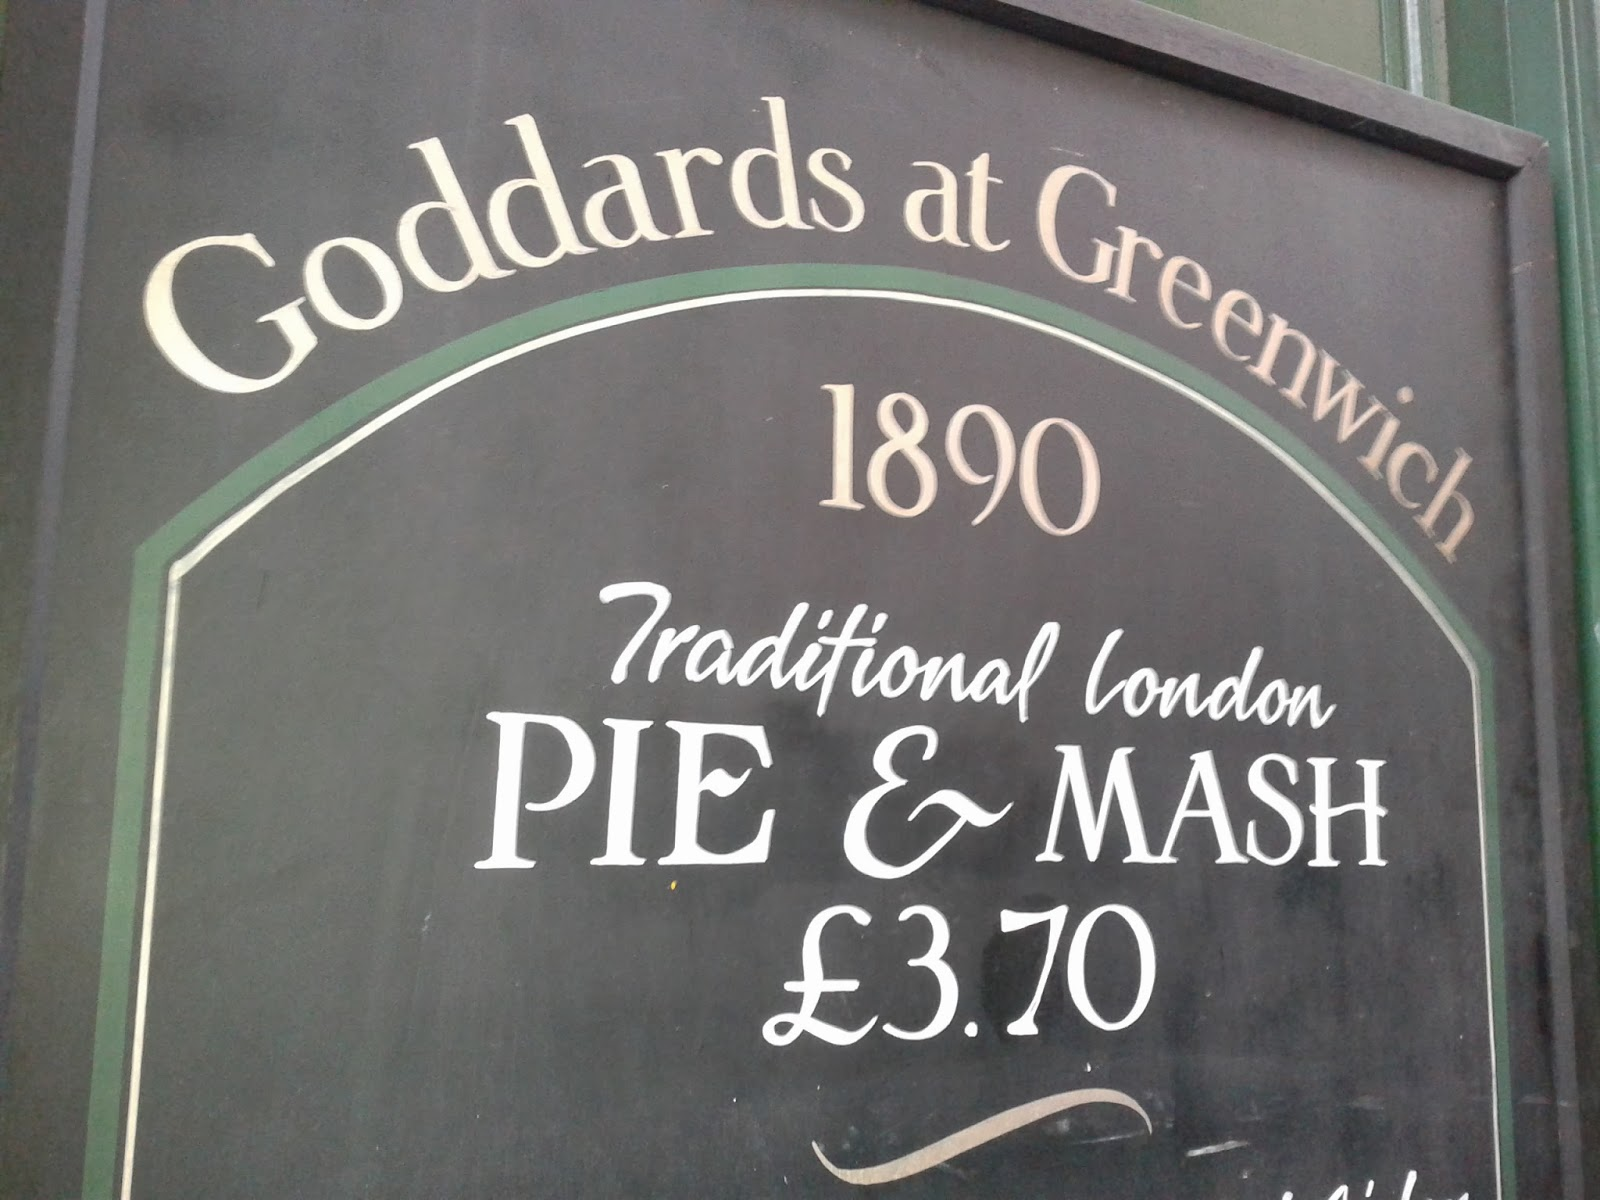 Goddard at Greenwich pie and mash